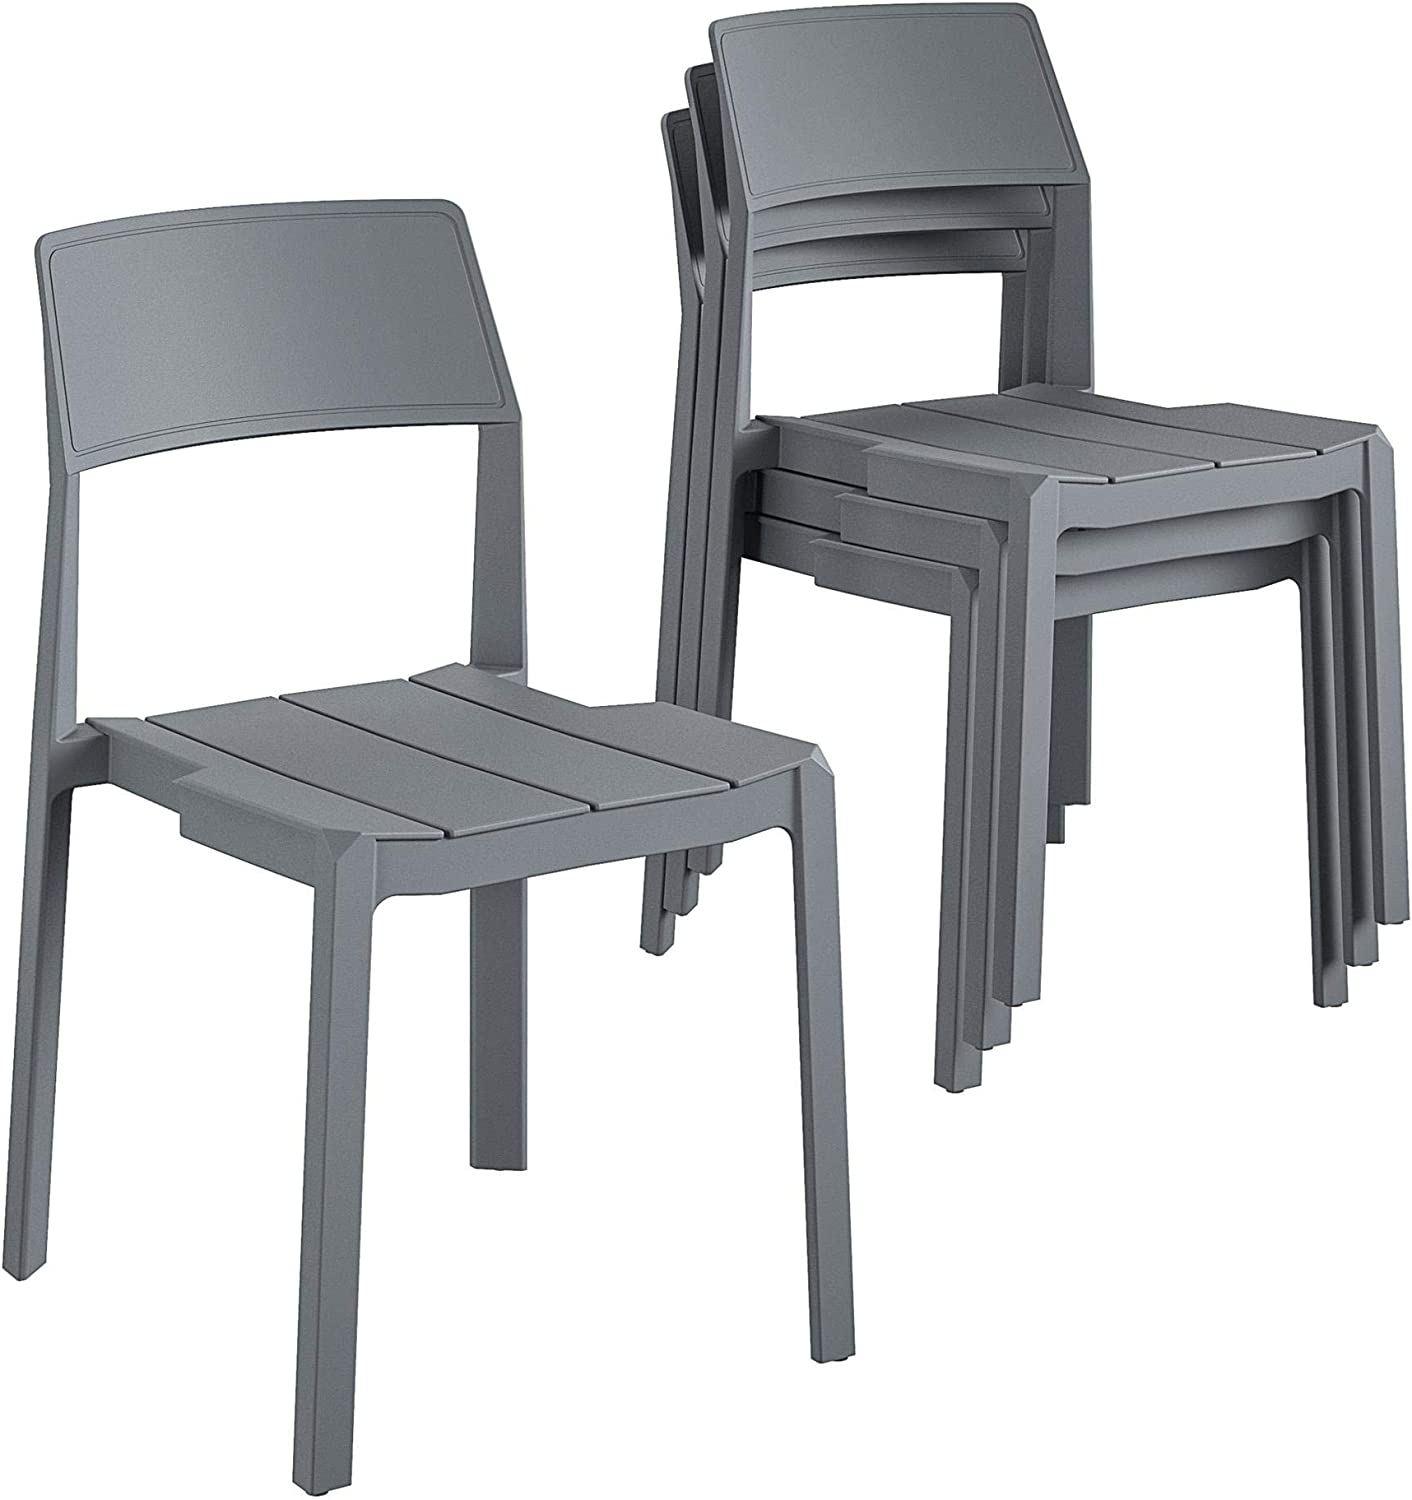 Novogratz Poolside Collection, Chandler Stacking, 4-Pack, Charcoal Dining Chairs